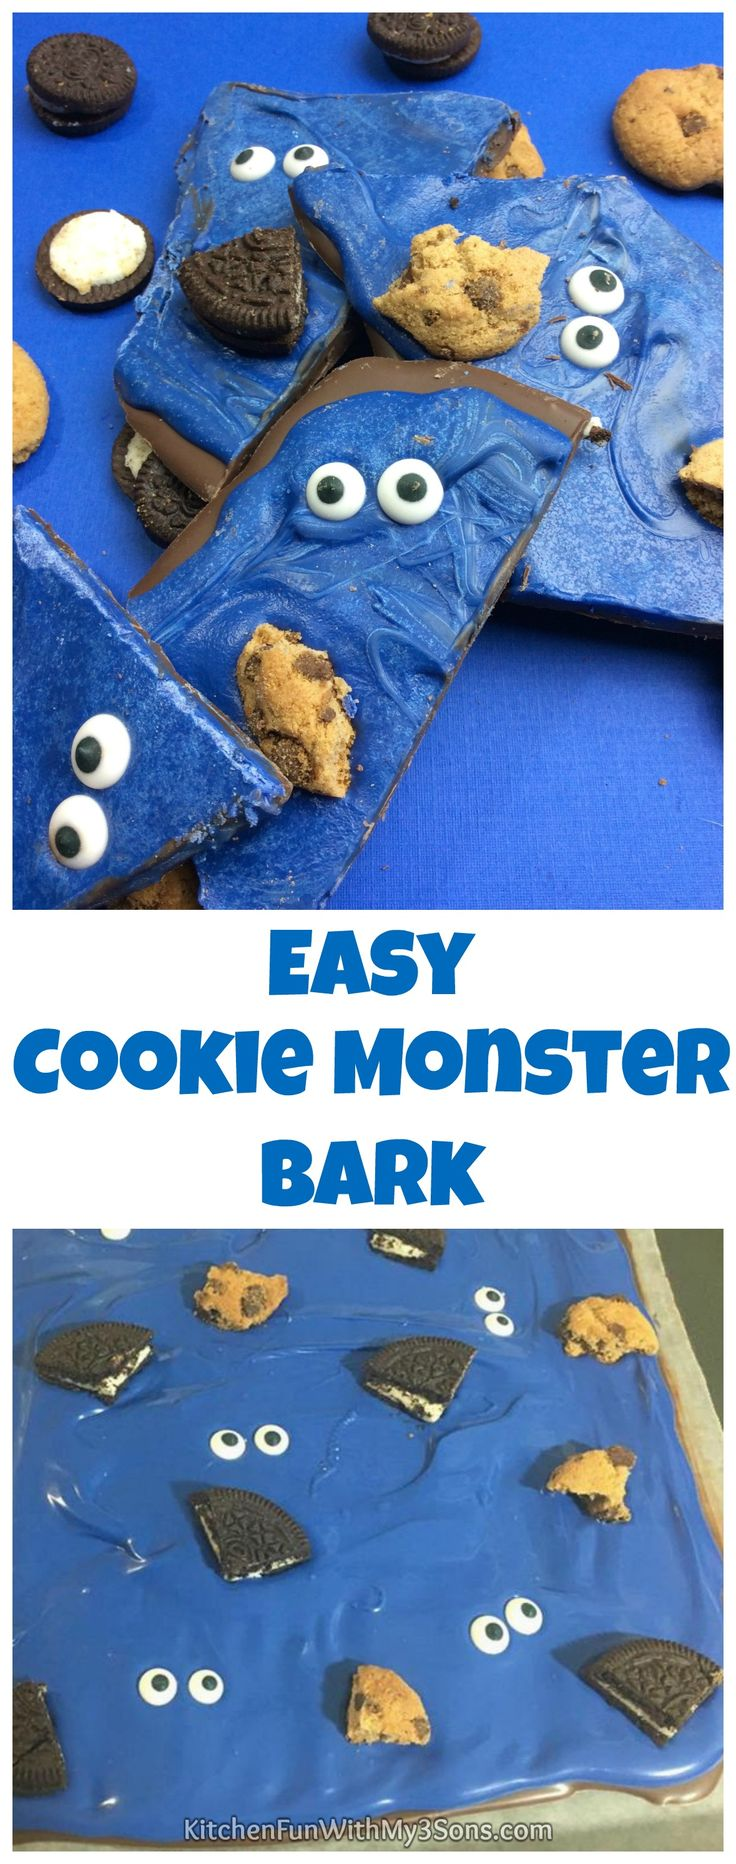 This Cookie Monster Bark is so adorable and easy to make! Your little Sesame Street fans will absolutely LOVE this fun treat.